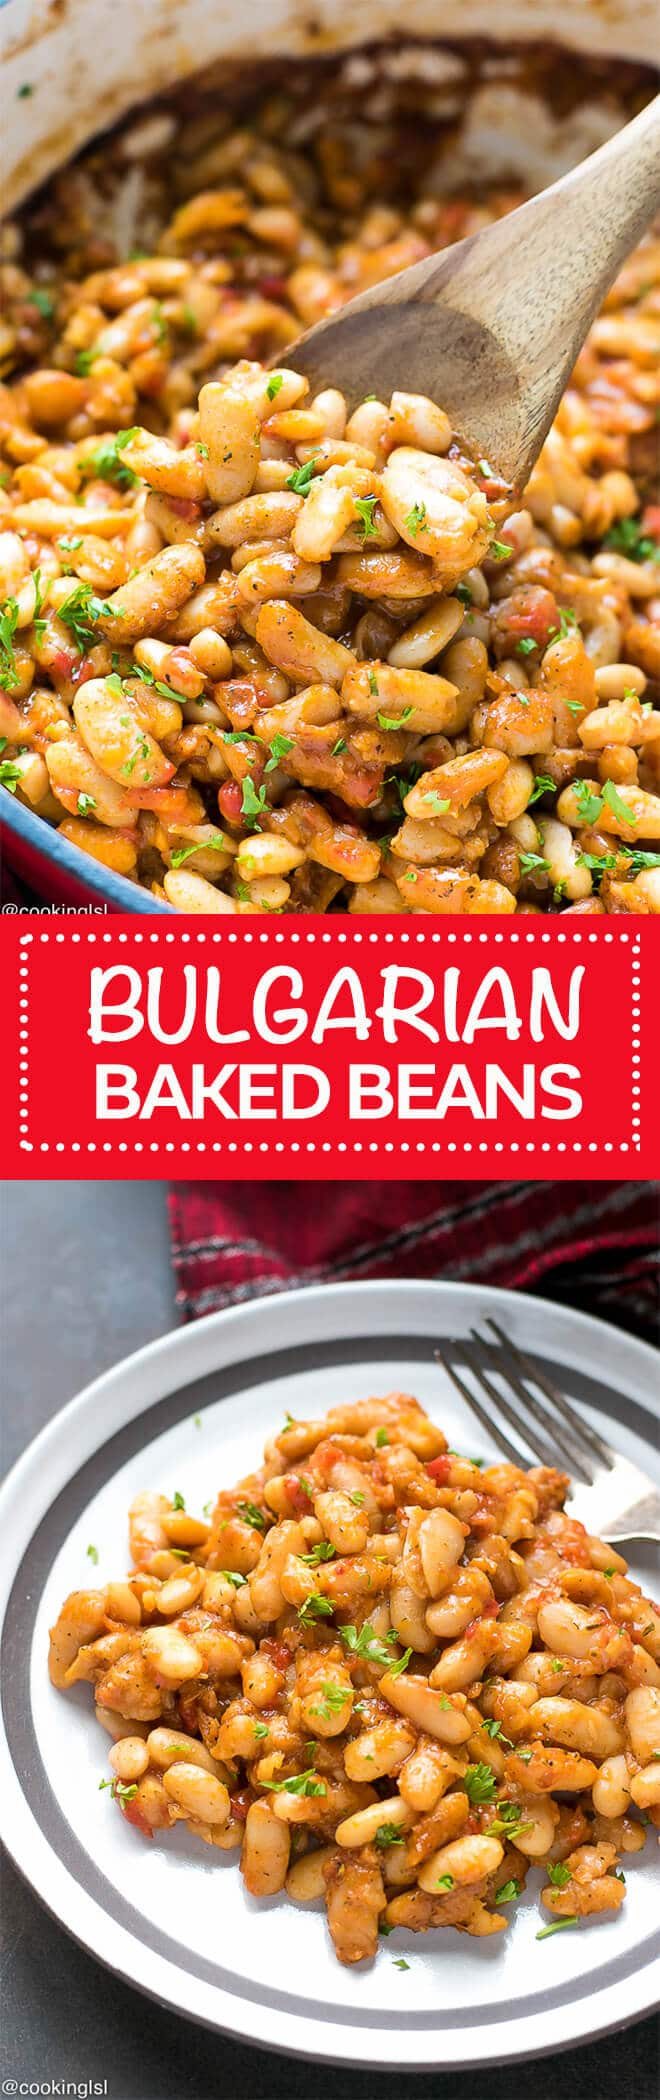 Easy bulgarian baked beans recipe vegetarian cooking lsl easy bulgarian baked beans recipe one of the easiest ways to make baked beans forumfinder Choice Image